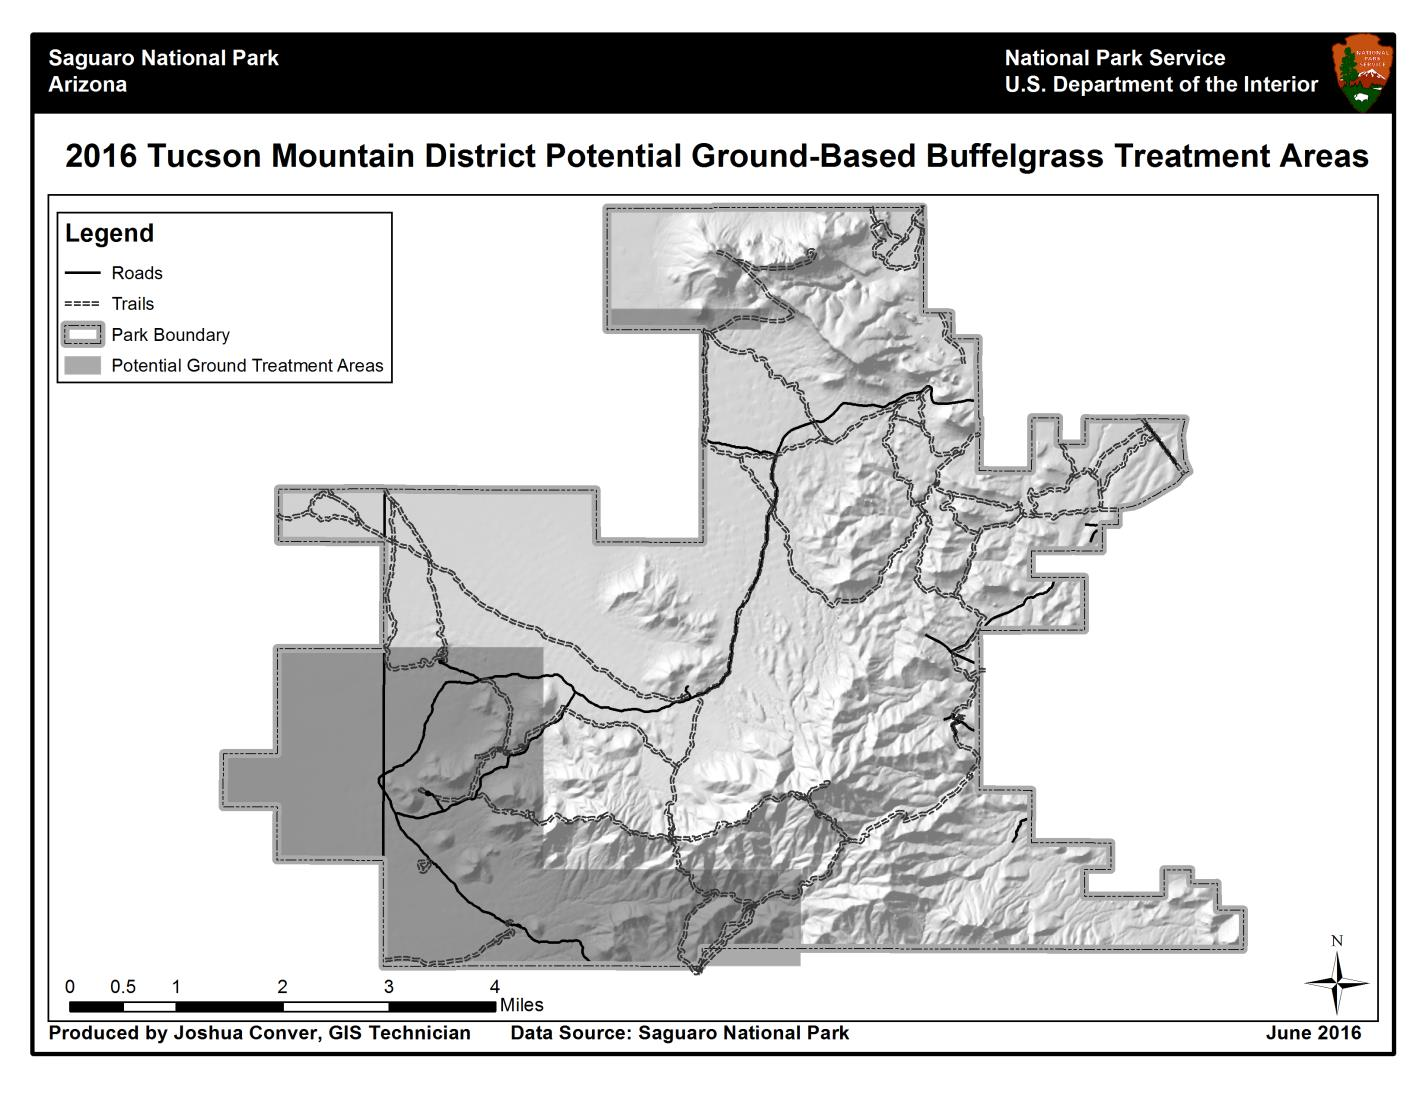 Saguaro National Park Continues Efforts to Restore Native Sonoran